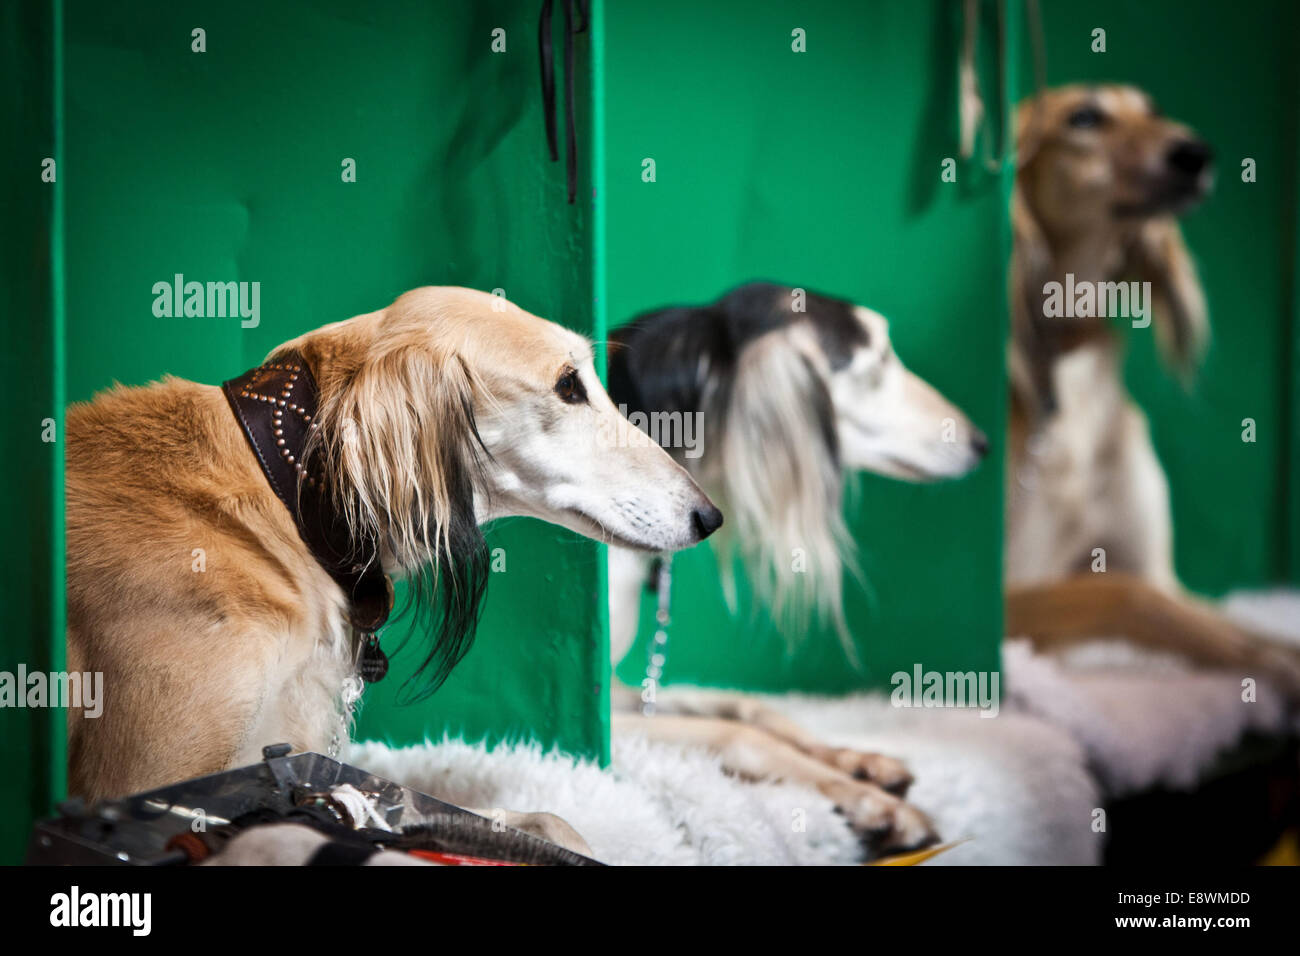 General view of Crufts 2014 at the NEC in Birmingham, UK. 7th March 2014. - Stock Image